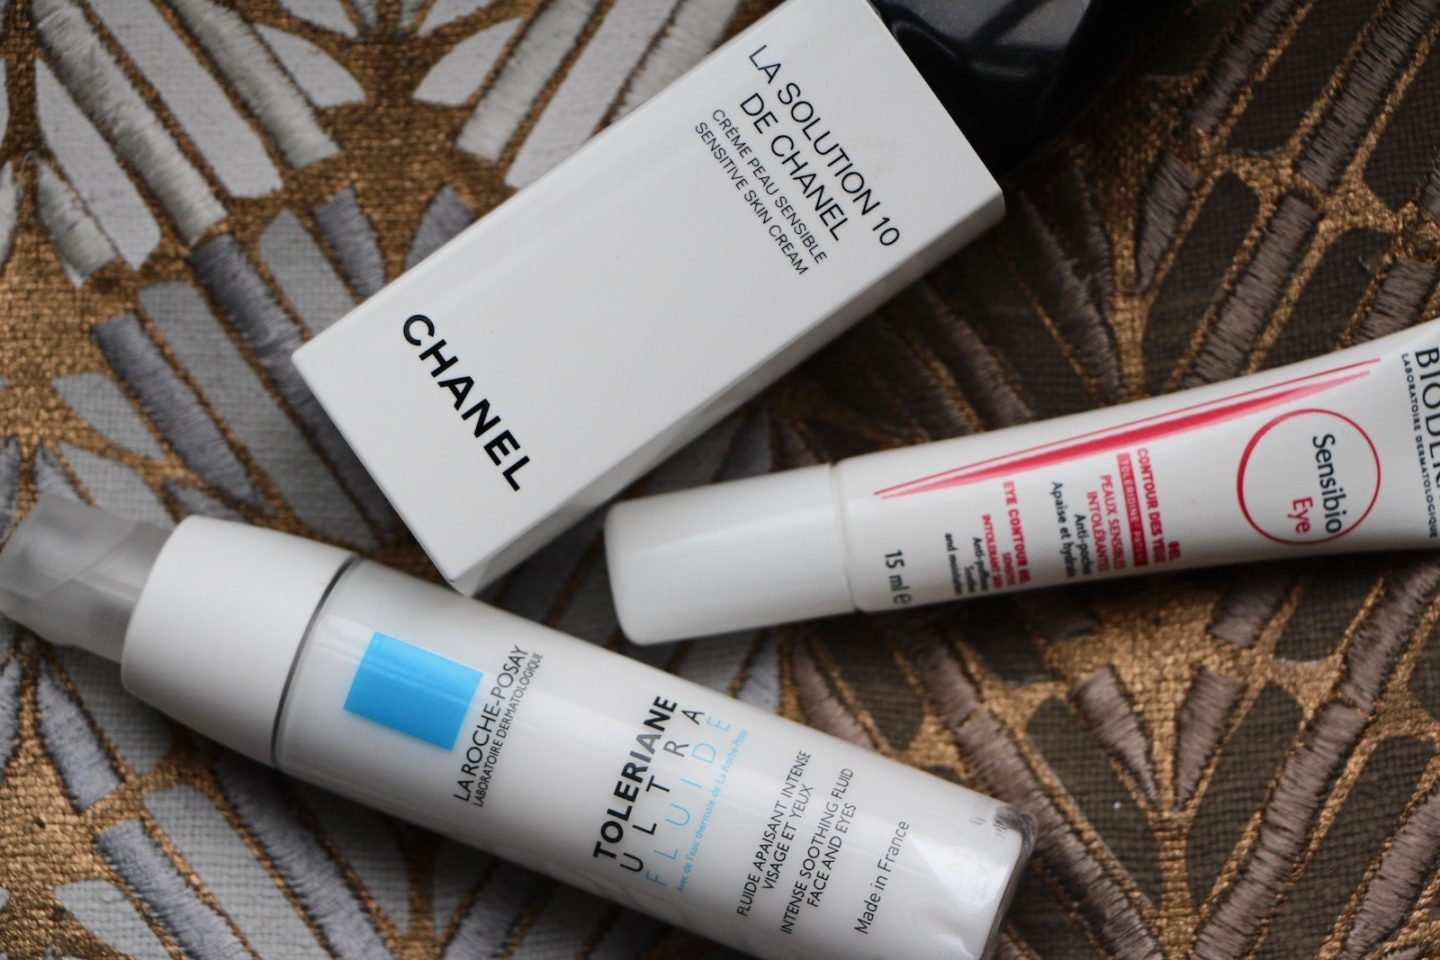 Bioderma Sensibio Eye Contour Gel Review